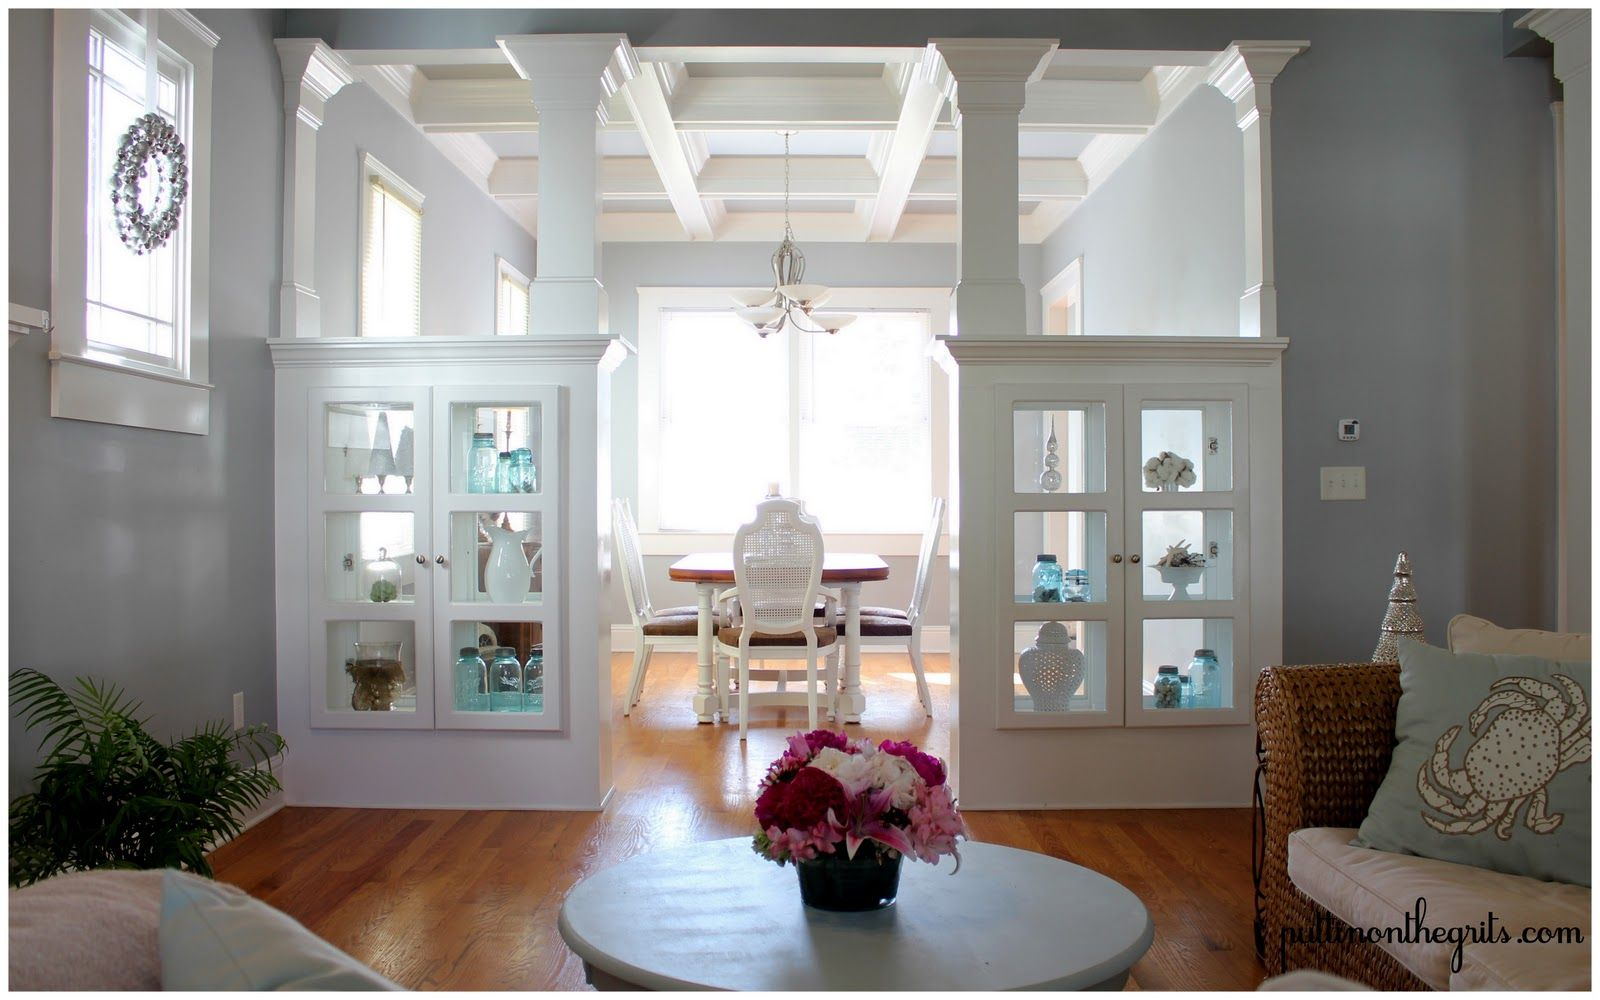 Living Dining Room Cabinets: Another View Of Room Dividing Glass Cabs